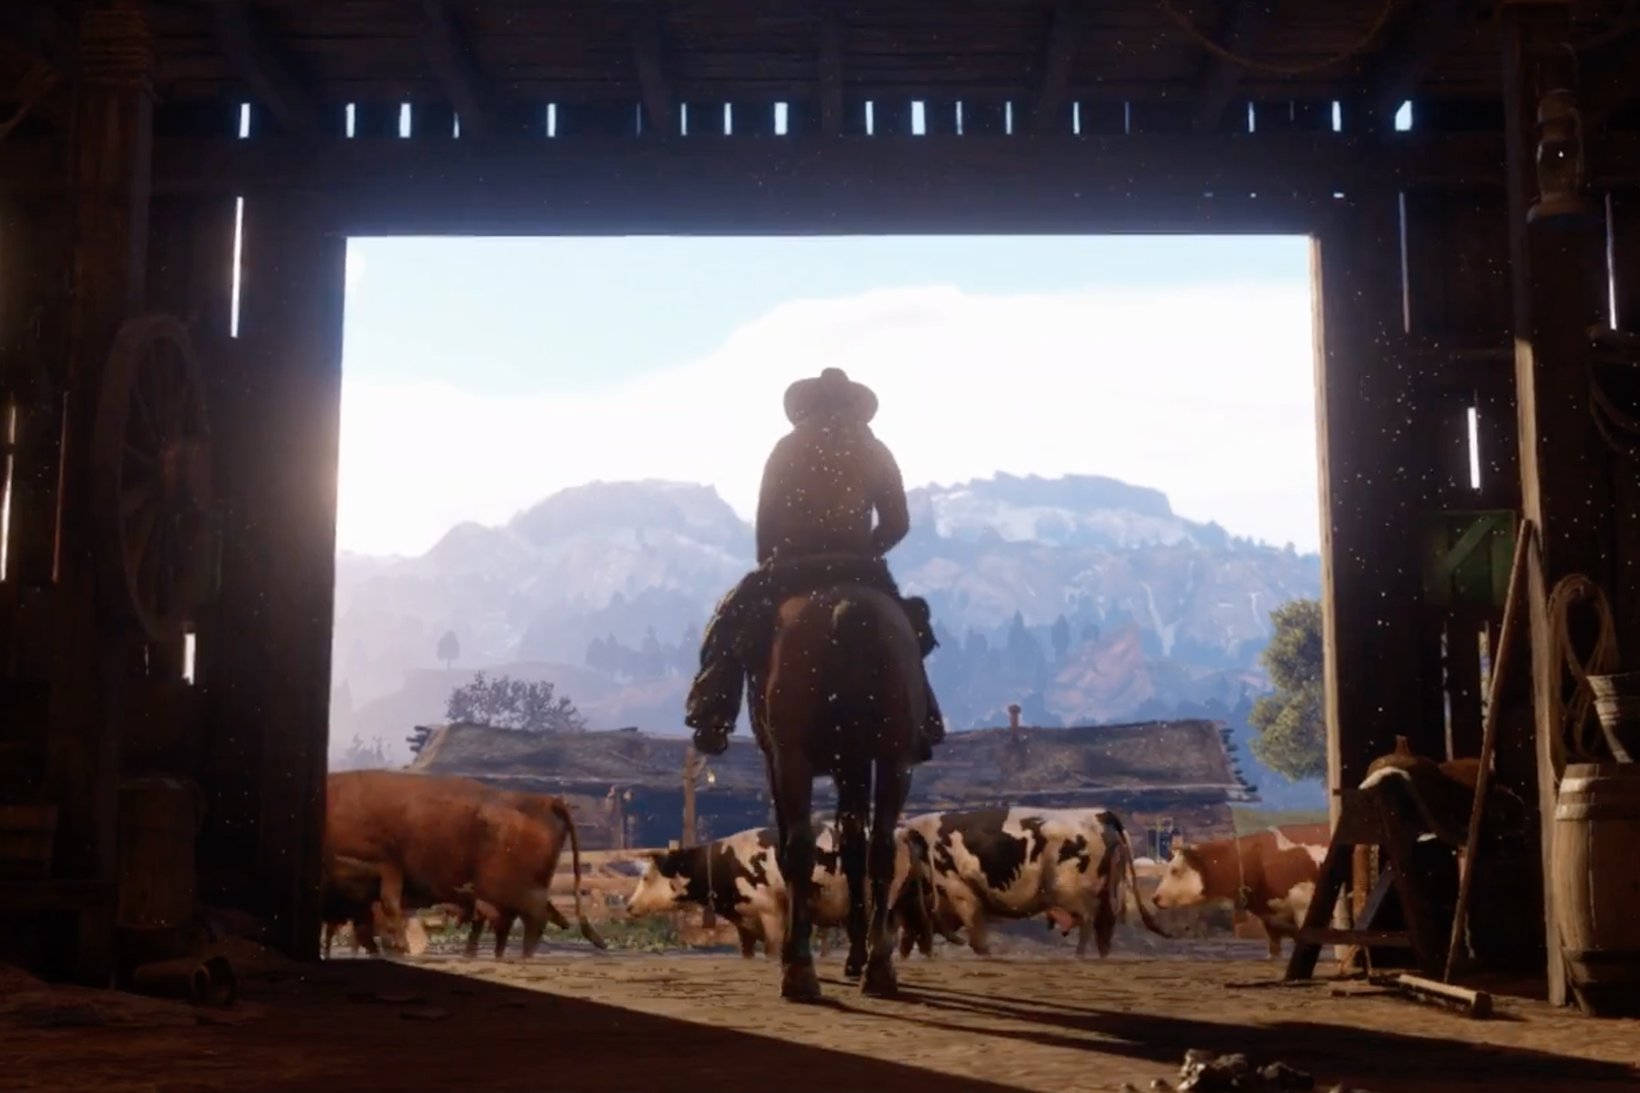 Rockstar Drops the First Teaser Trailer for 'Red Dead Redemption 2'